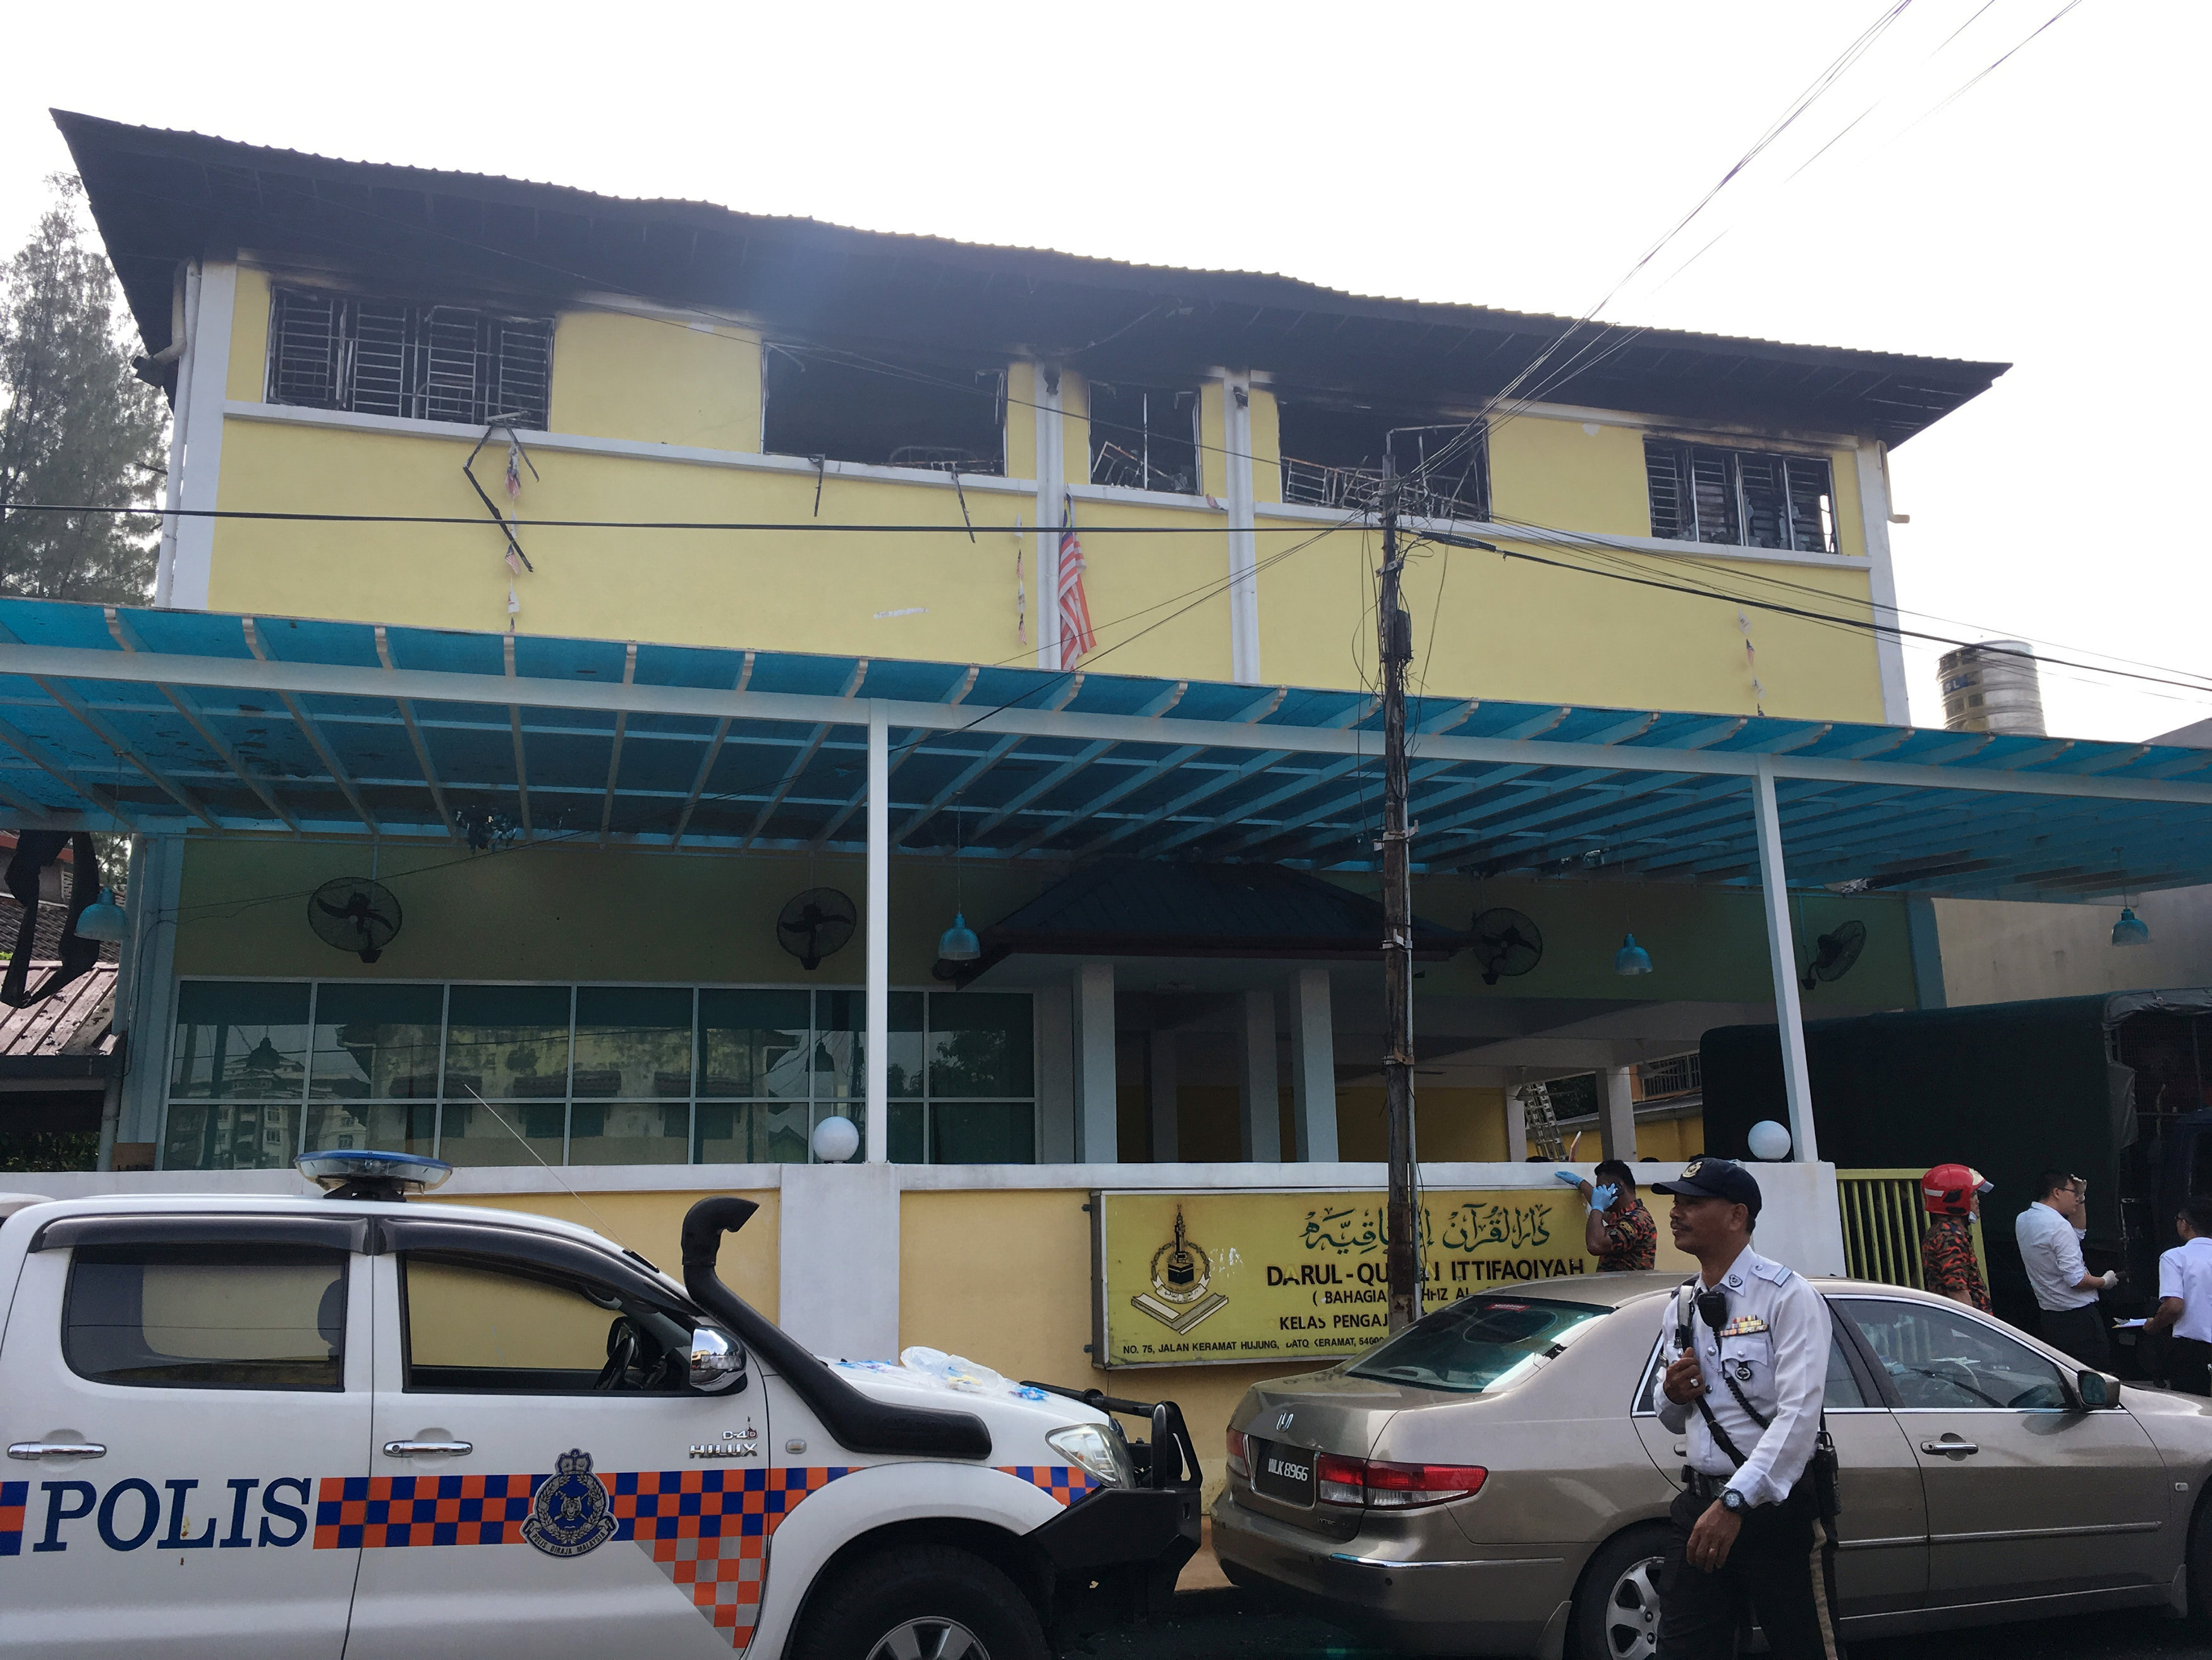 Police and fire department work at the religious school Darul Quran Ittifaqiyah after a fire broke out in Kuala Lumpur, Malaysia on Sept. 14, 2017. (REUTERS/A. Ananthalakshmi)